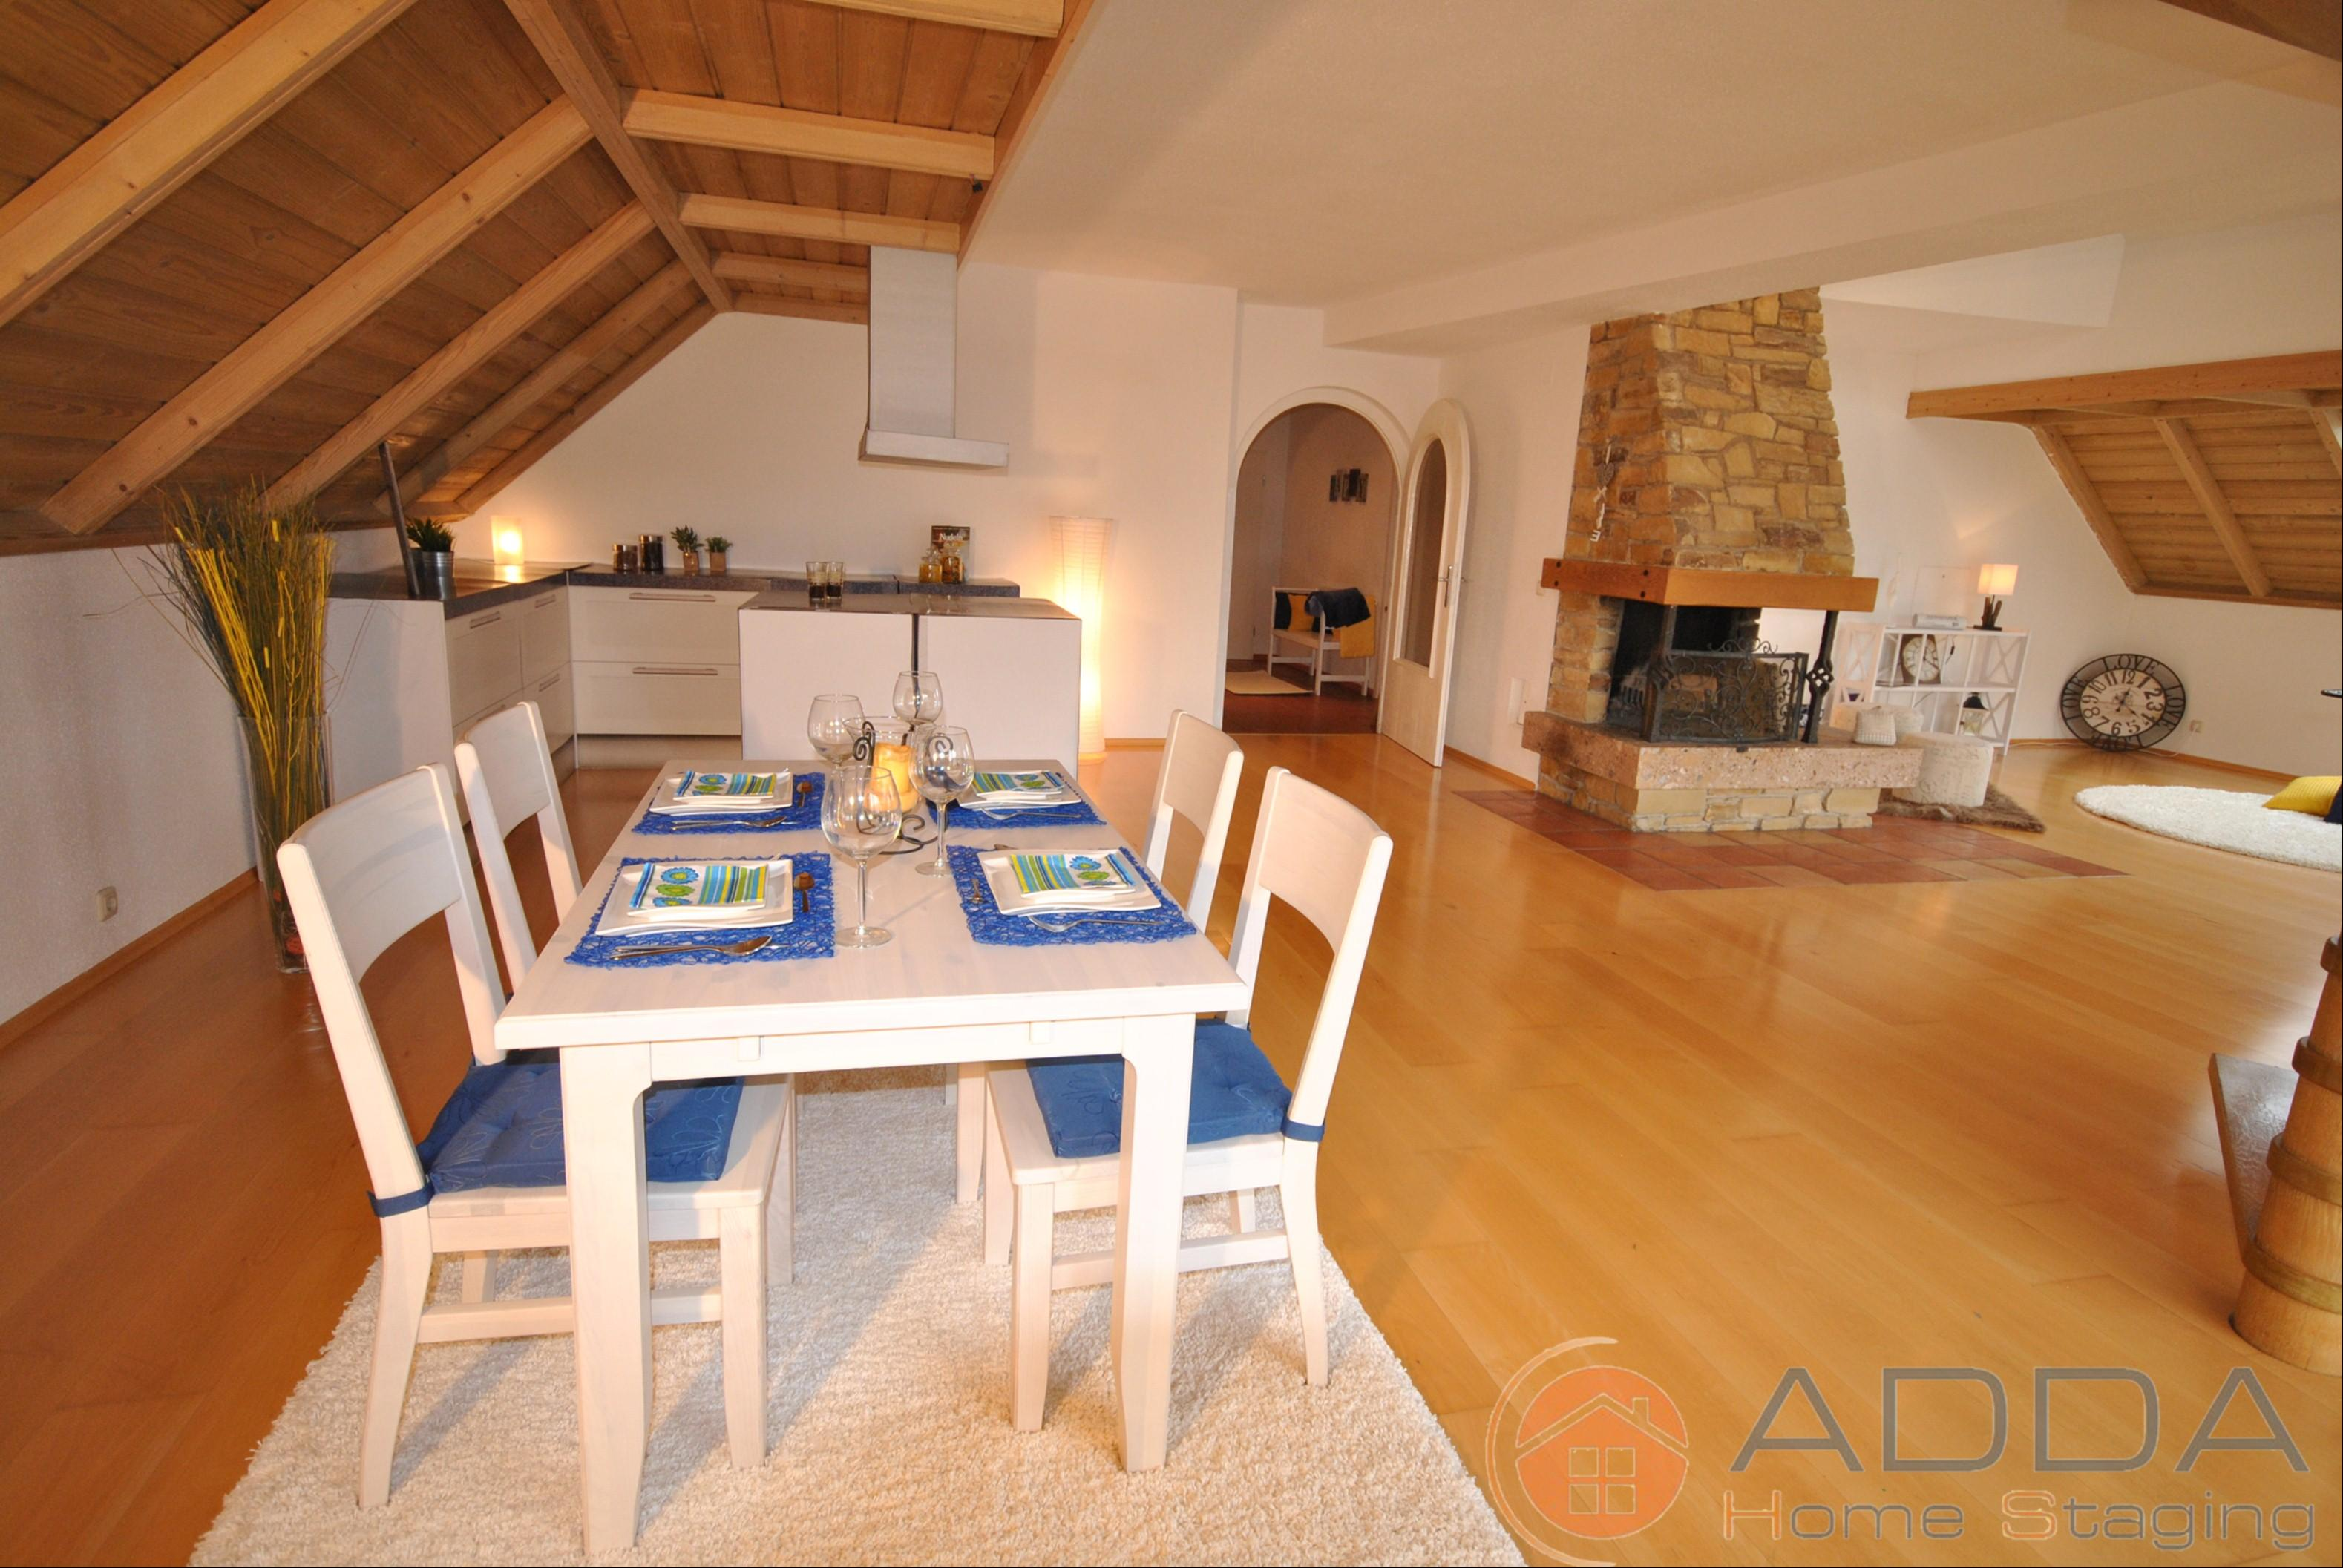 Essbereich nach dem Home Staging #offeneküche ©ADDA Home Staging